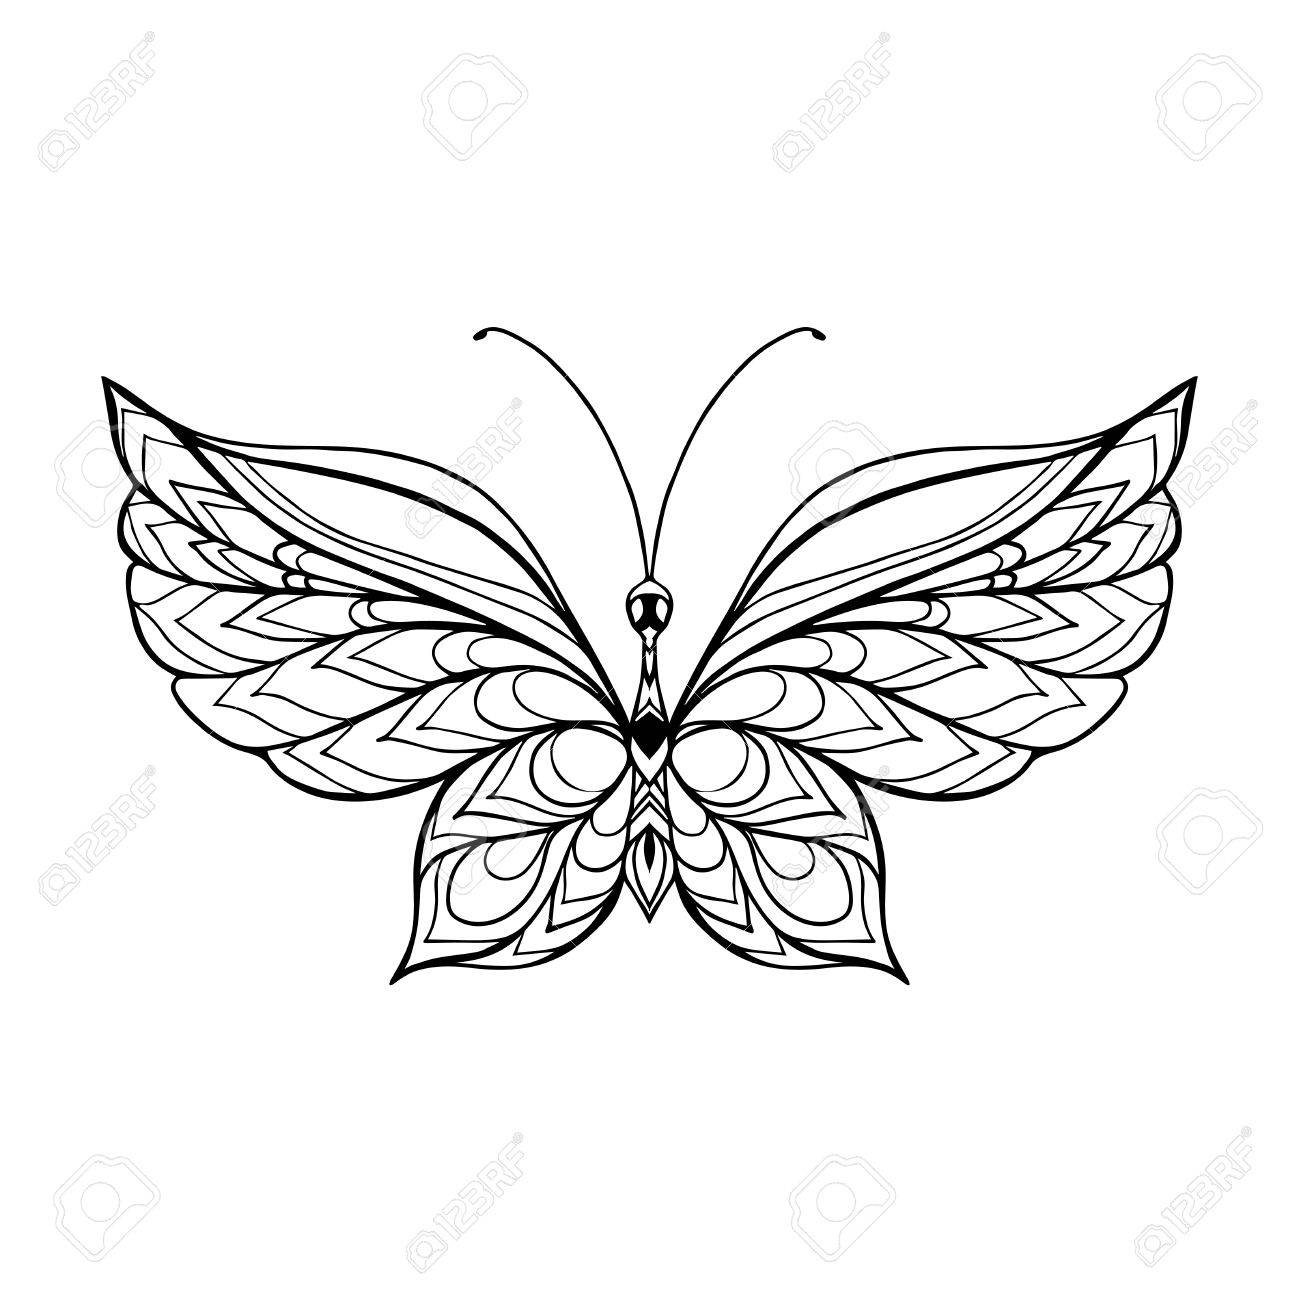 1299x1300 Decorative Butterfly. Coloring Book For Adult And Older Children